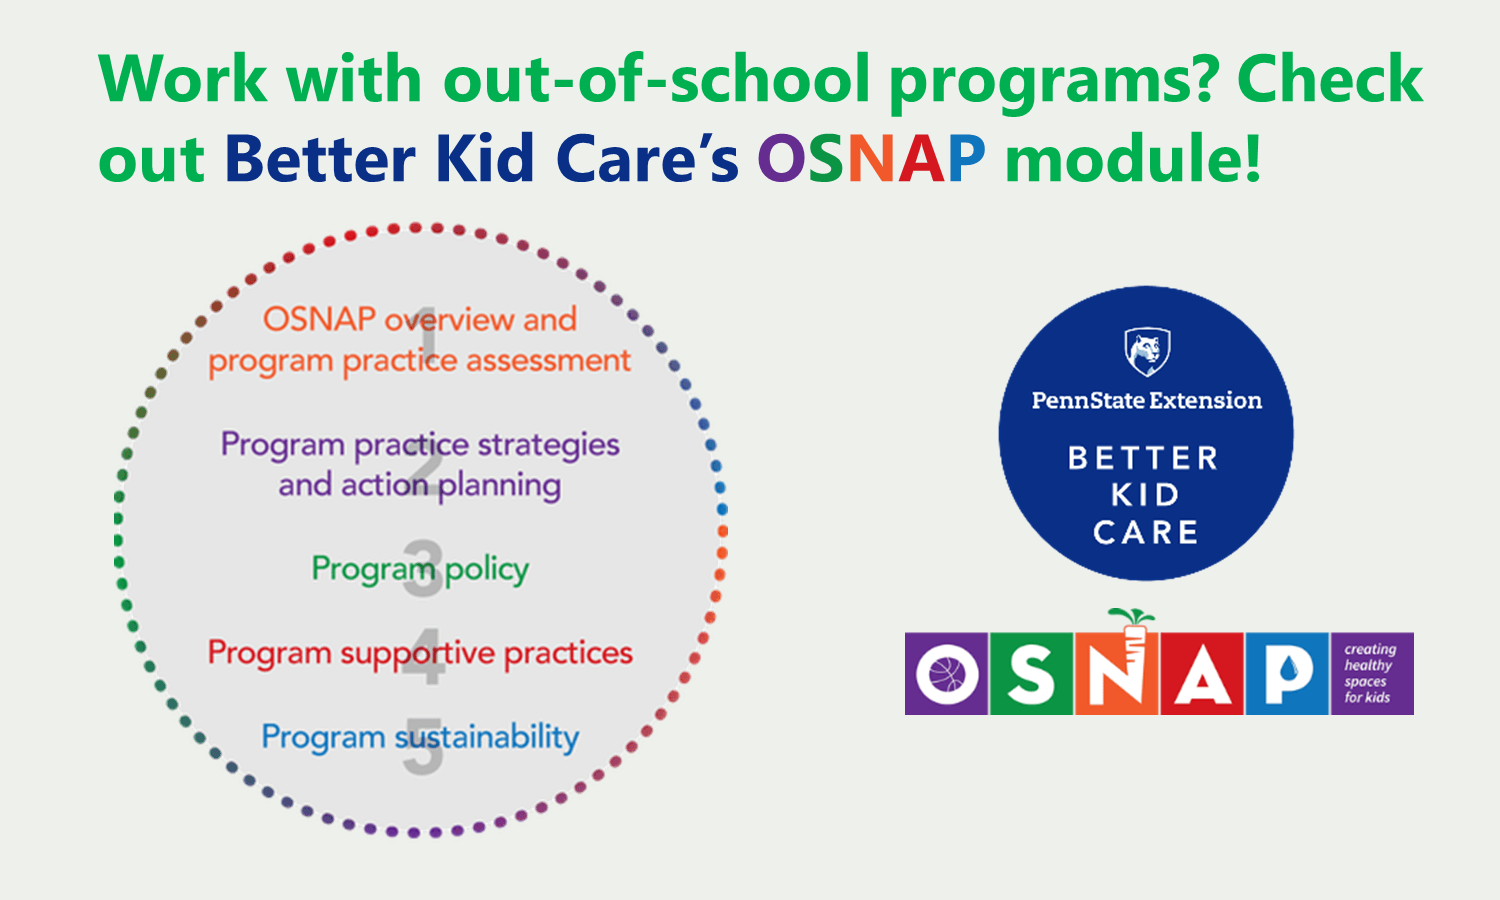 Work with out-of-school programs? Check out Better Kid Care's OSNAP module! The steps include: 1) OSNAP overview and program practice assessment; 2) program practice strategies and action planning; 3) program policy; 4) program supportive practices; 5) program sustainability.